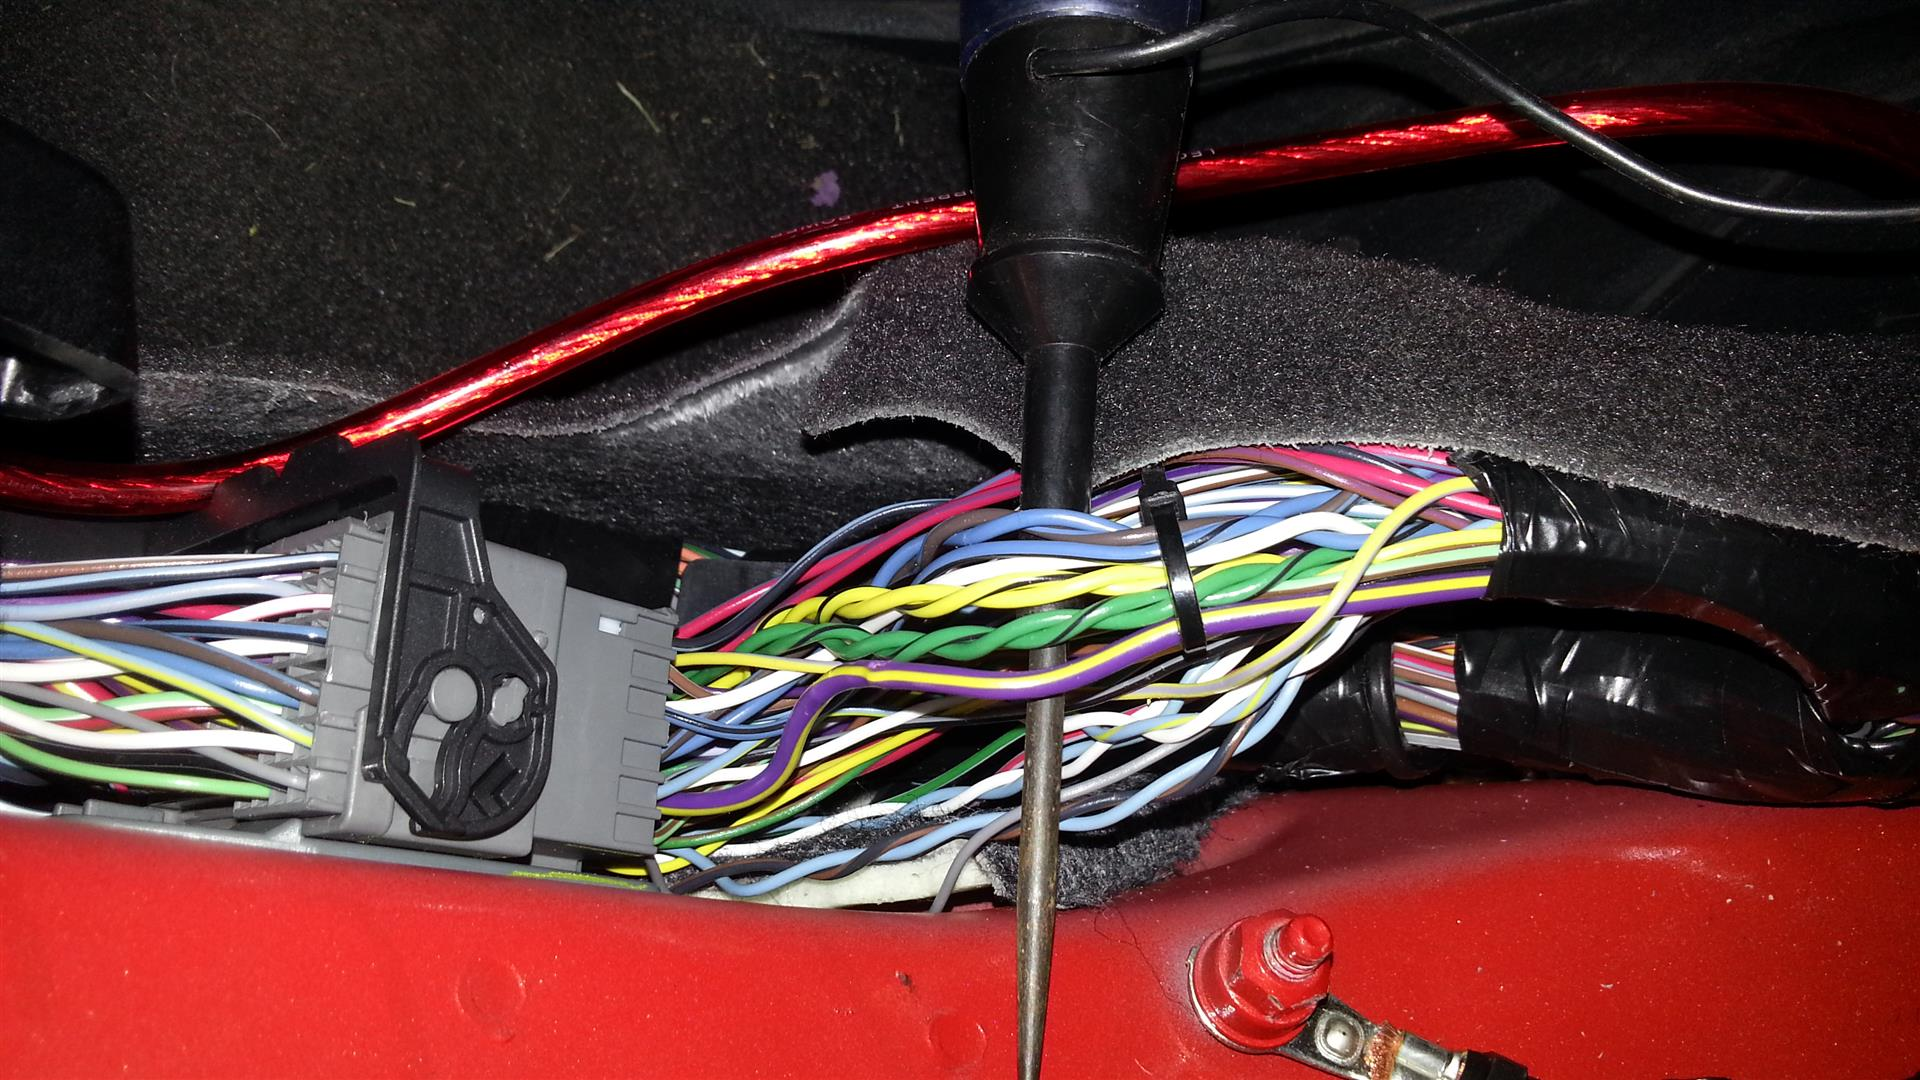 Speaker Wire Color Codes Chevy Sonic Owners Forum Wiring Harness Colors